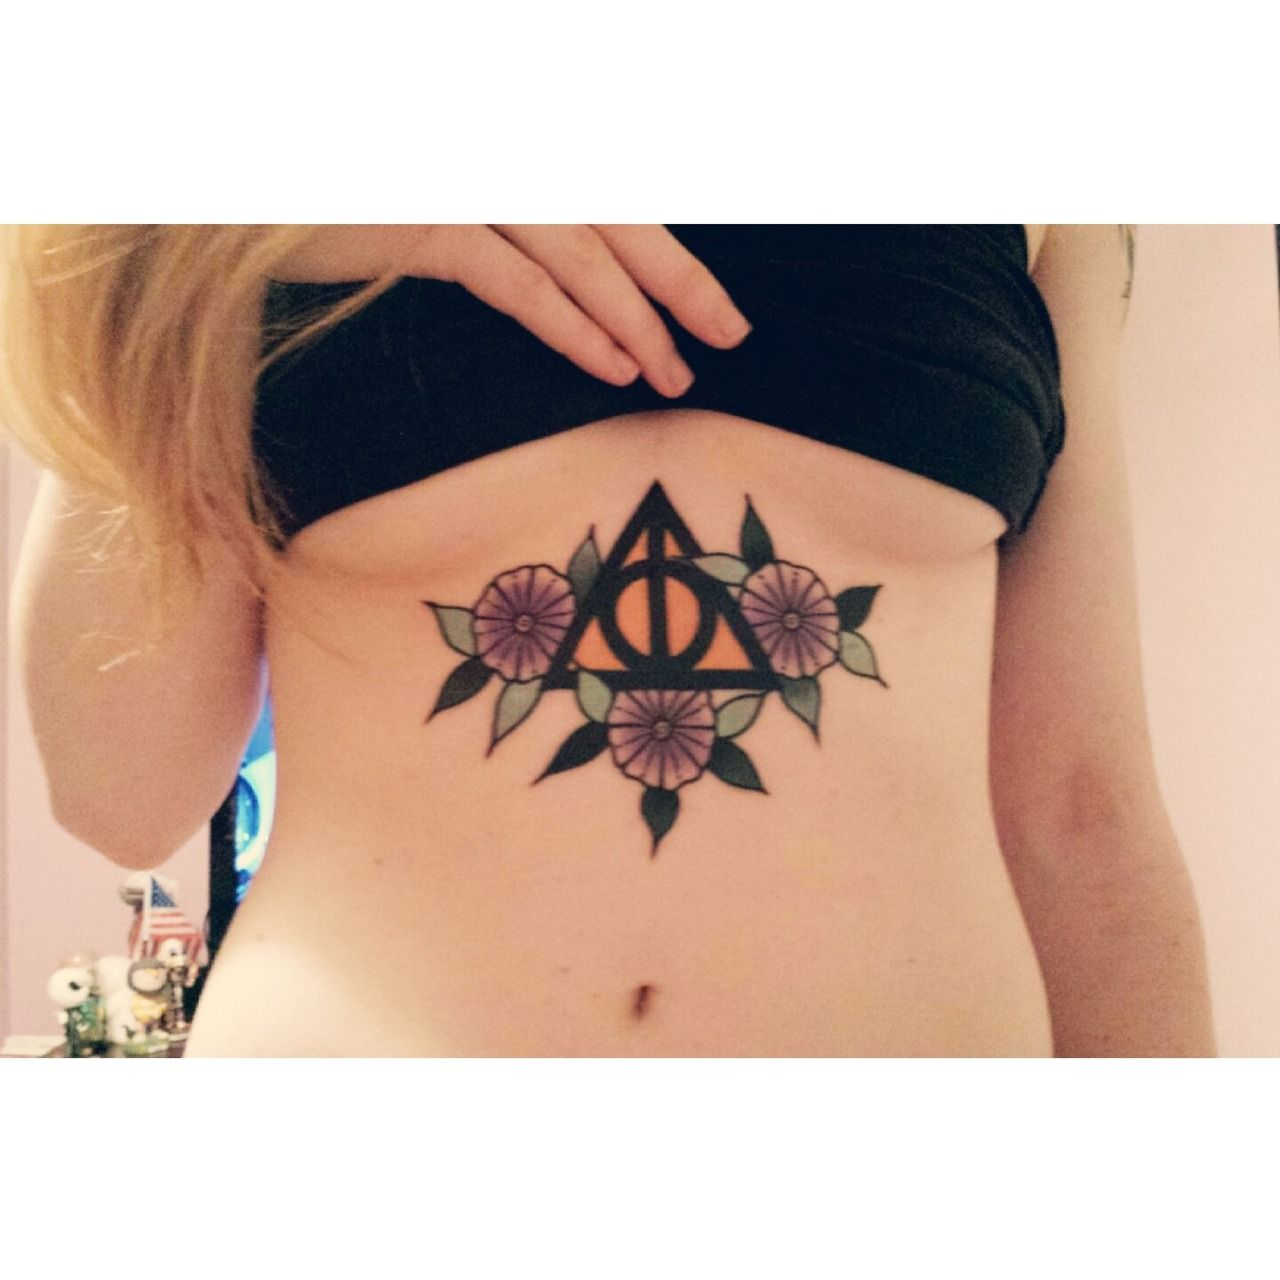 Really love the idea, but I think the deathly hallows mark could be more elegant. I'm also not a big fan of the combination of colors.